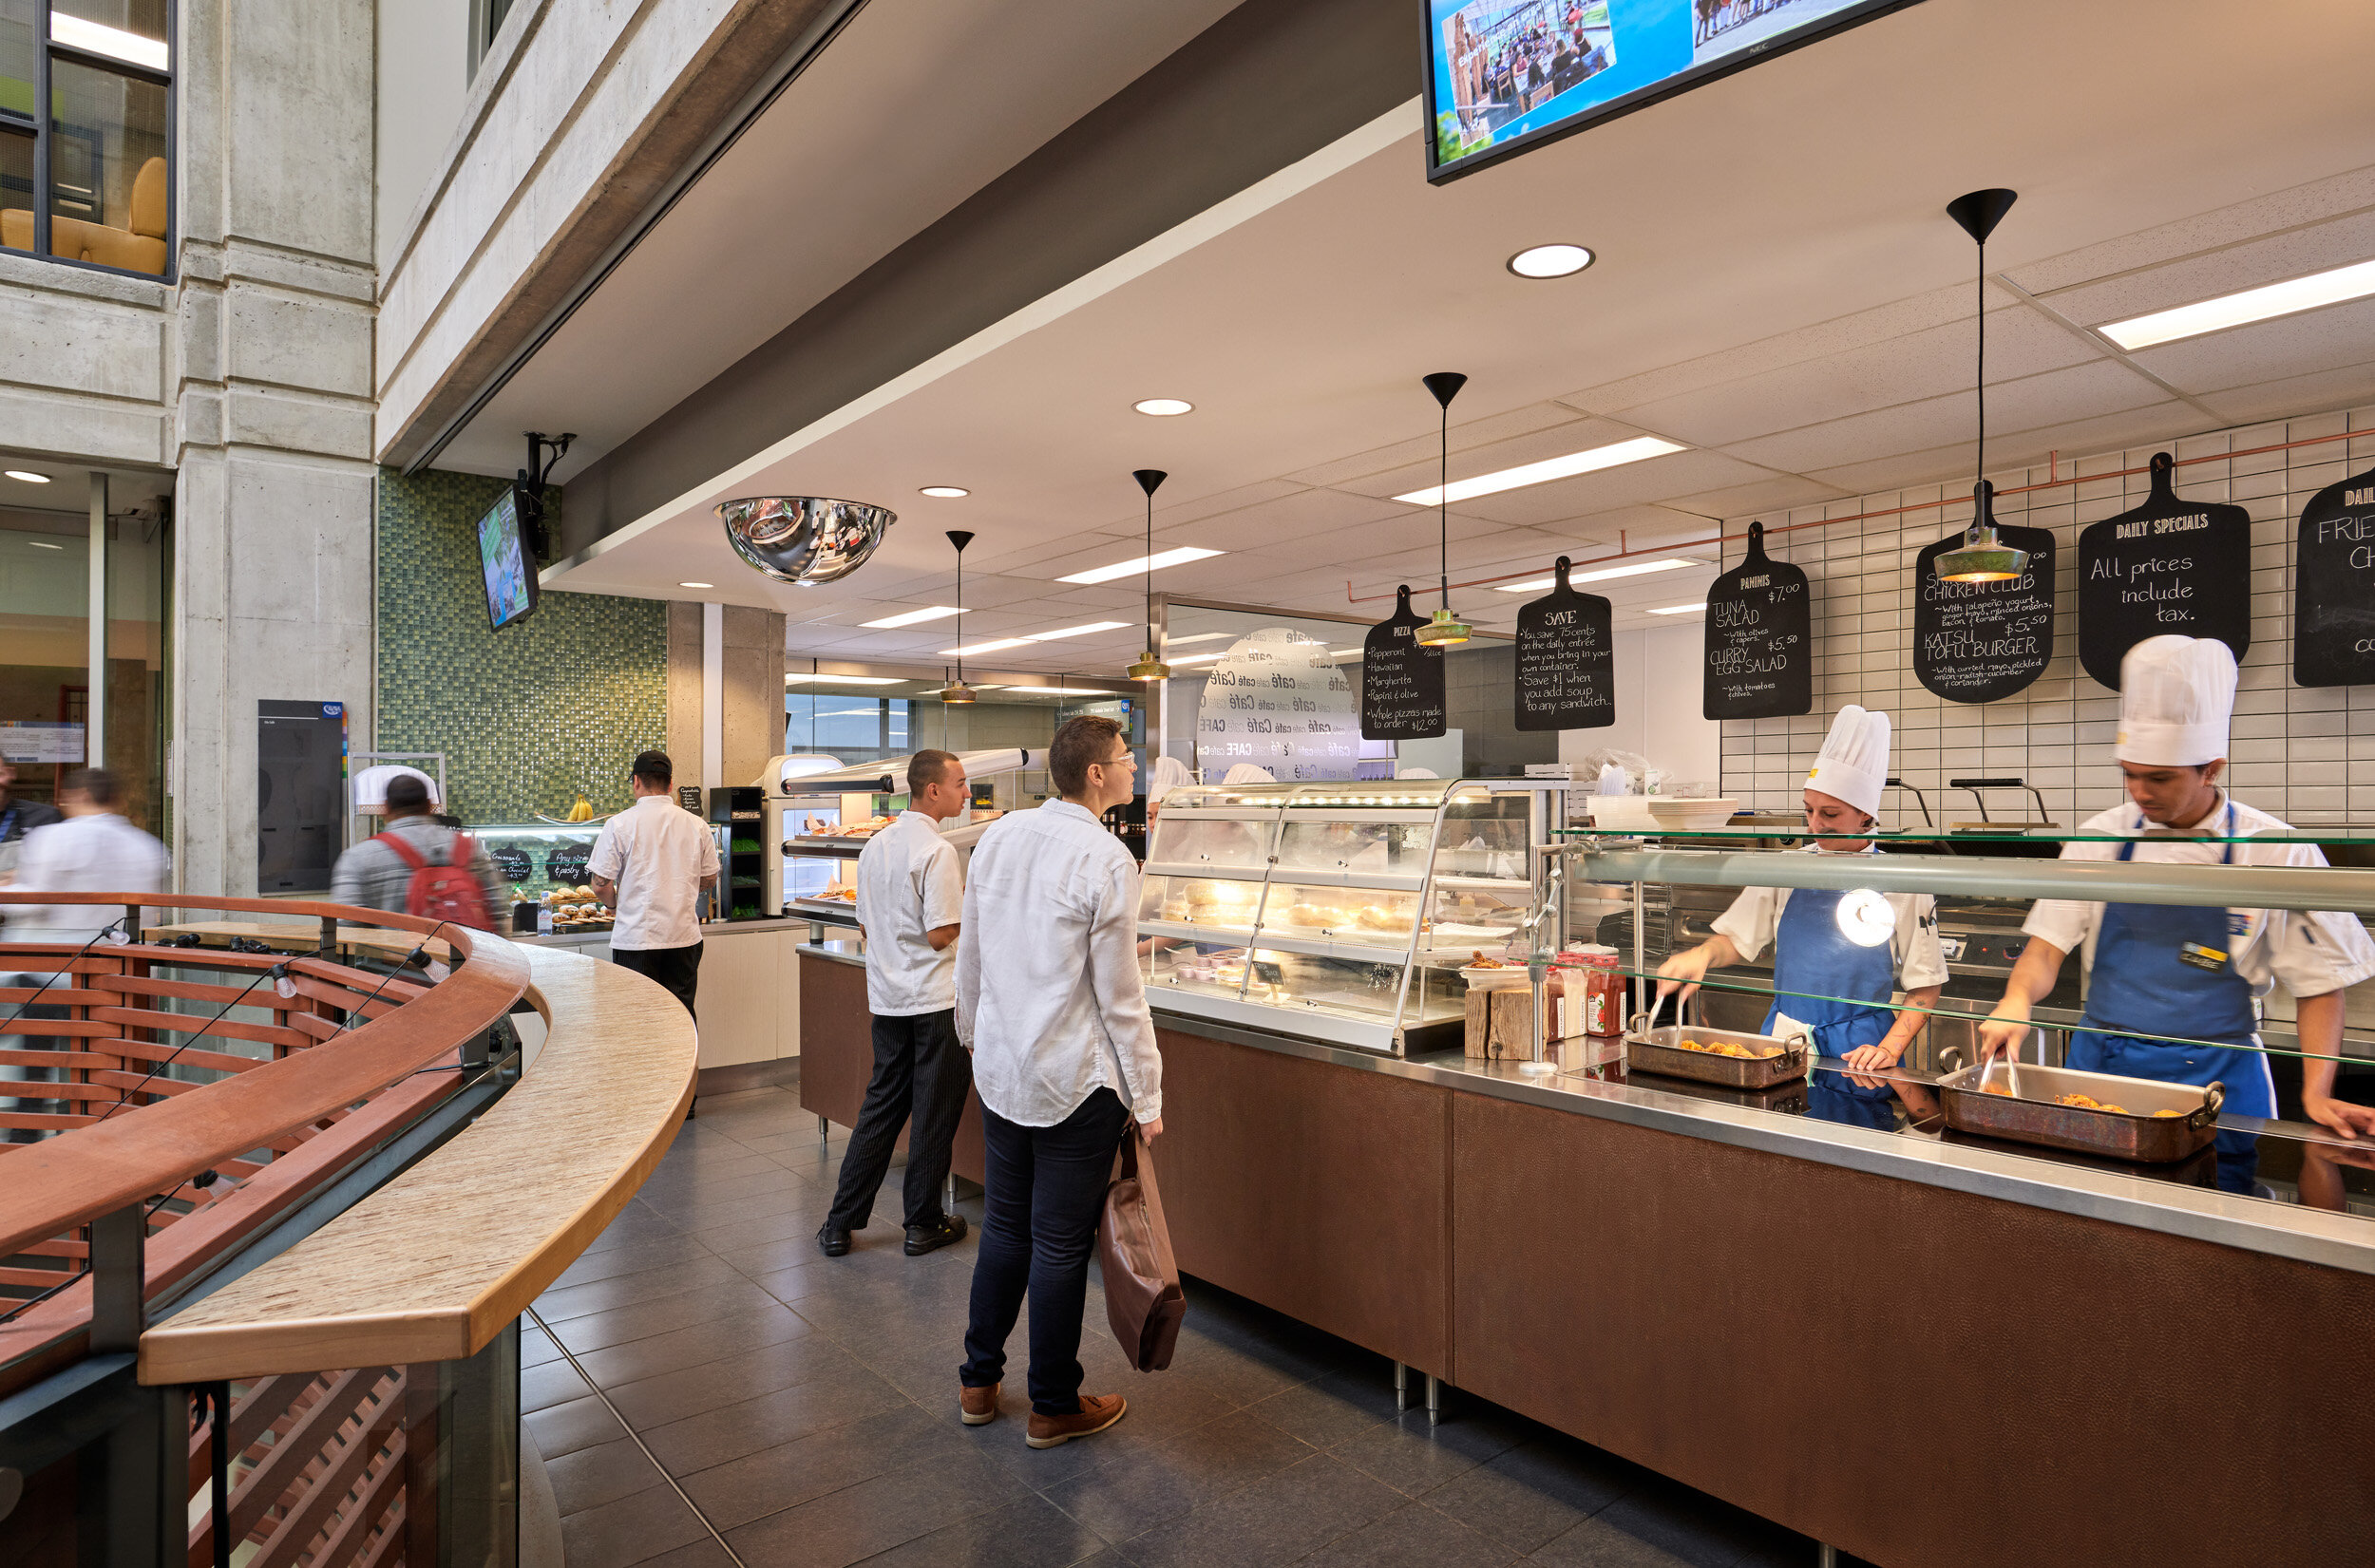 Customers browse options in the Café at The Centre for Hospitality & Culinary Arts, George Brown College, Toronto